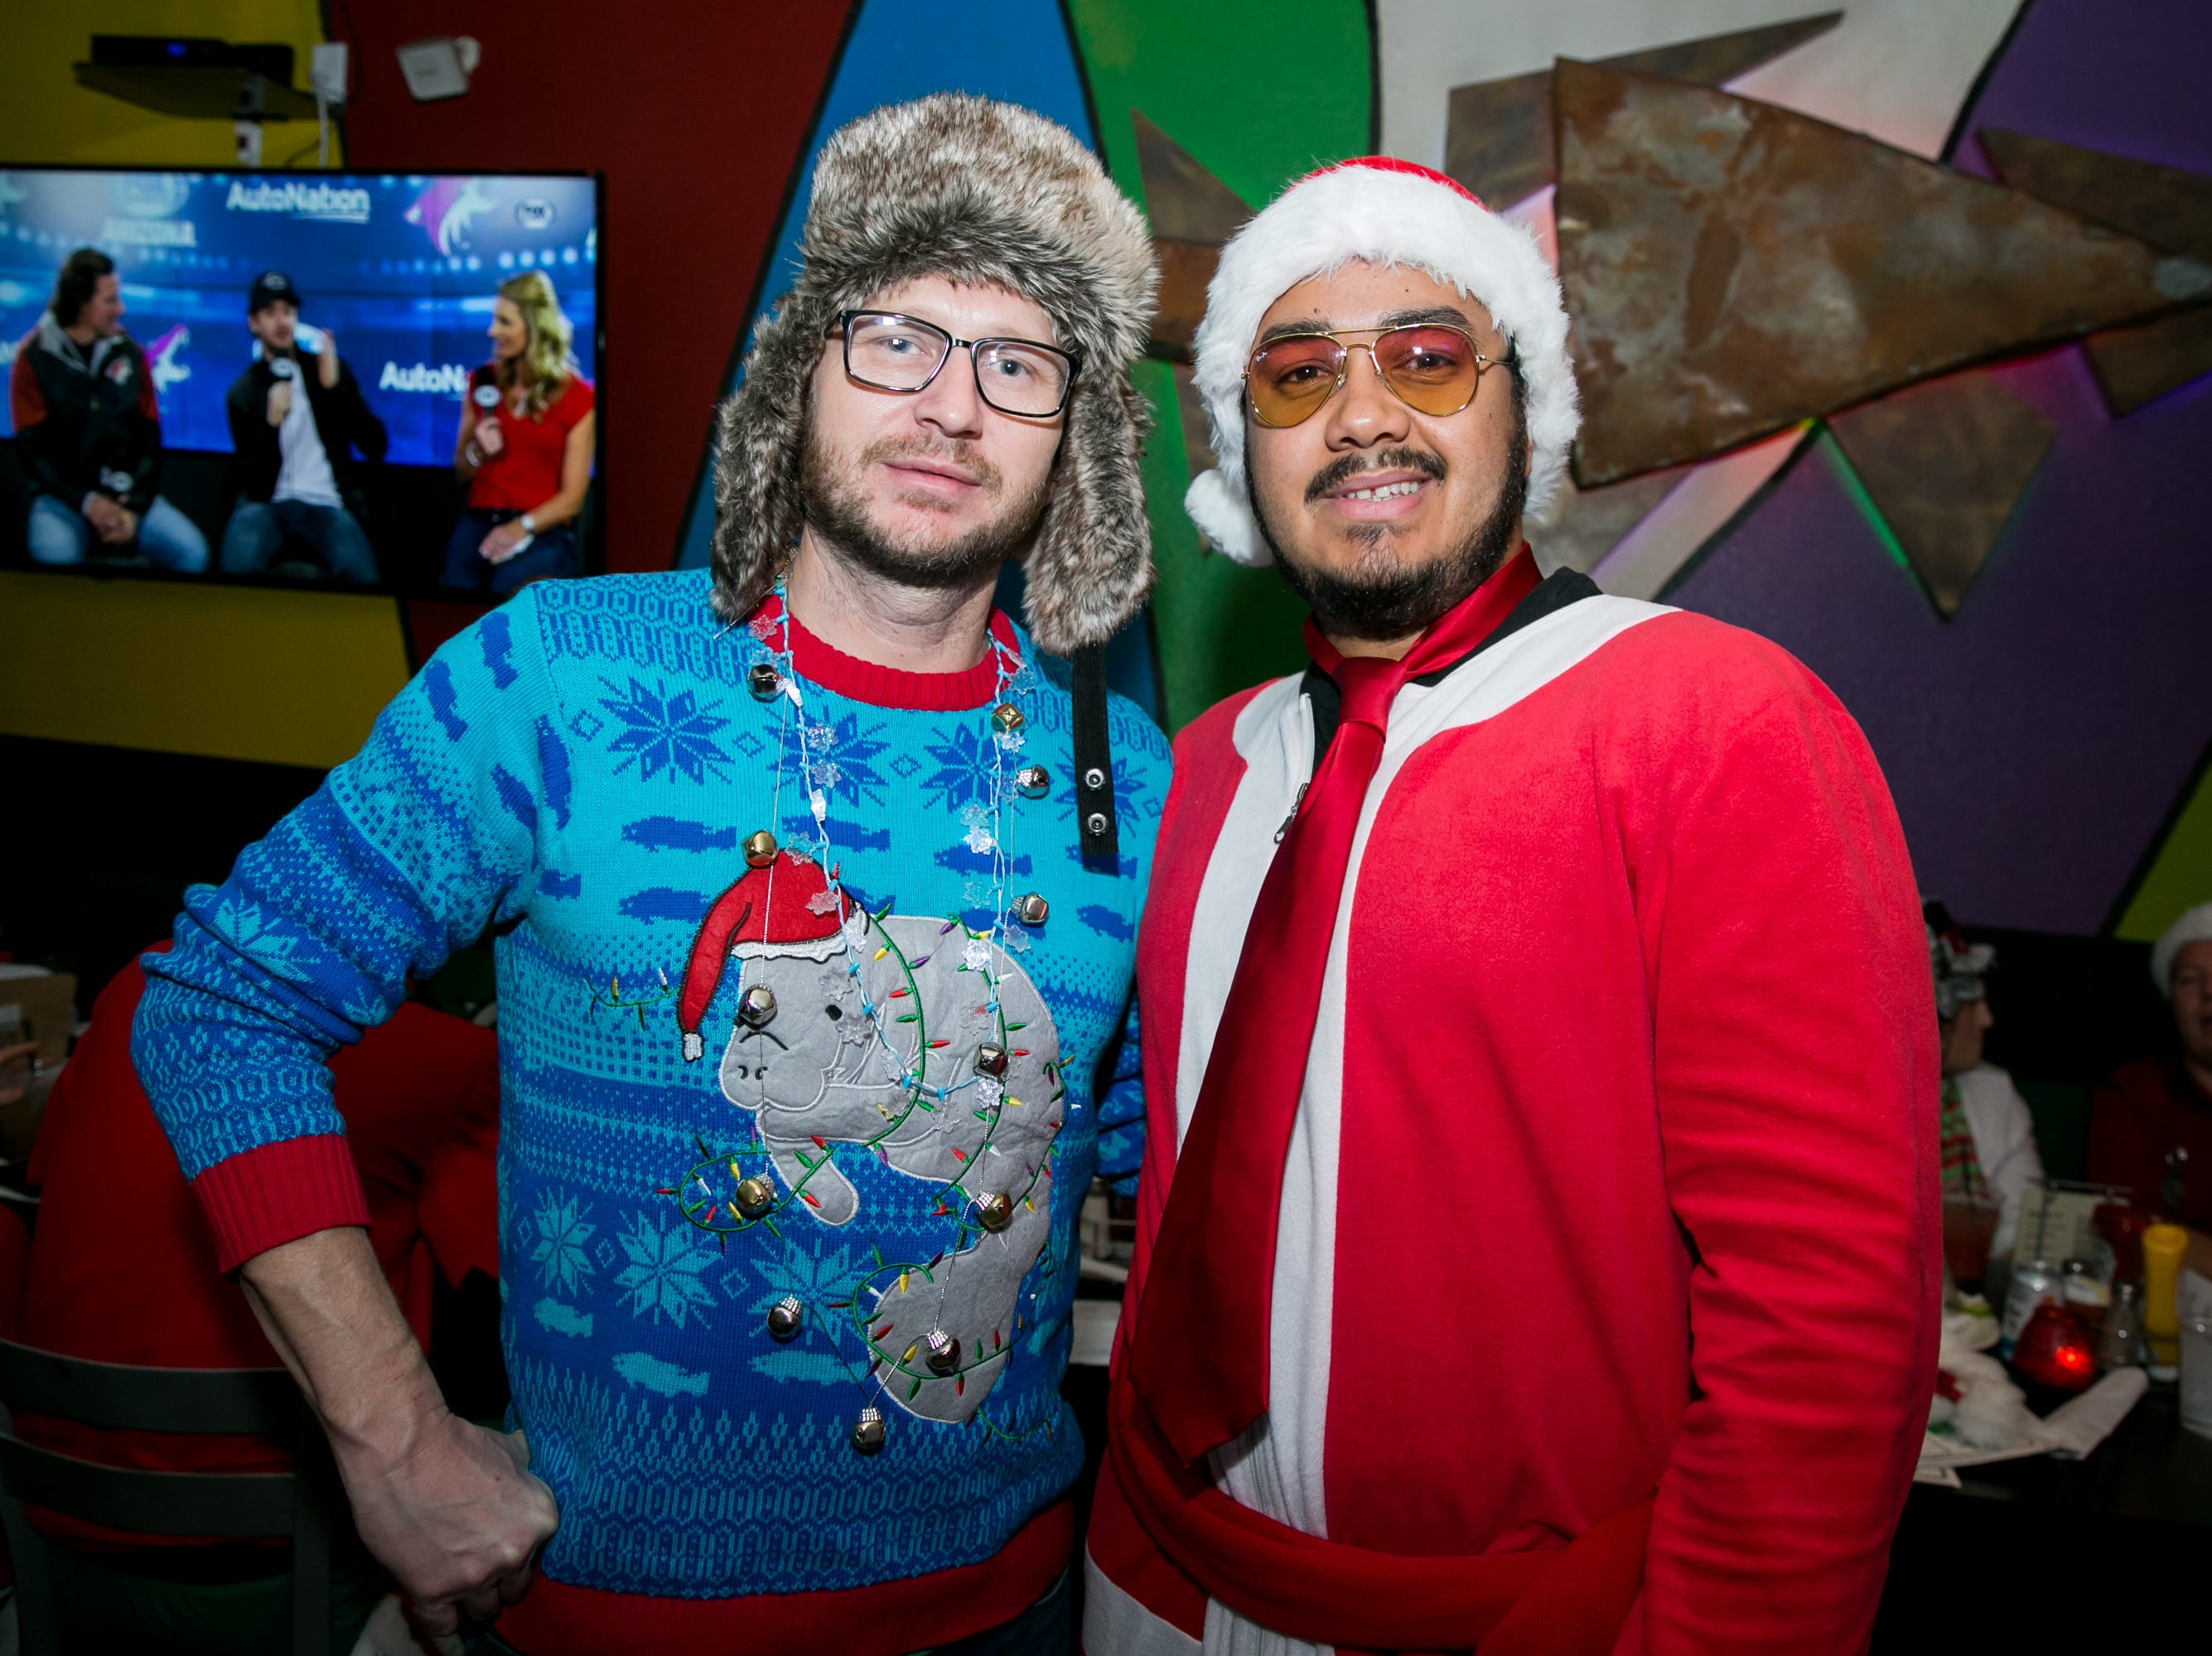 His manatee sweater was amazing at Steve's Greenhouse Grill during Santarchy on Saturday, December 8, 2018.